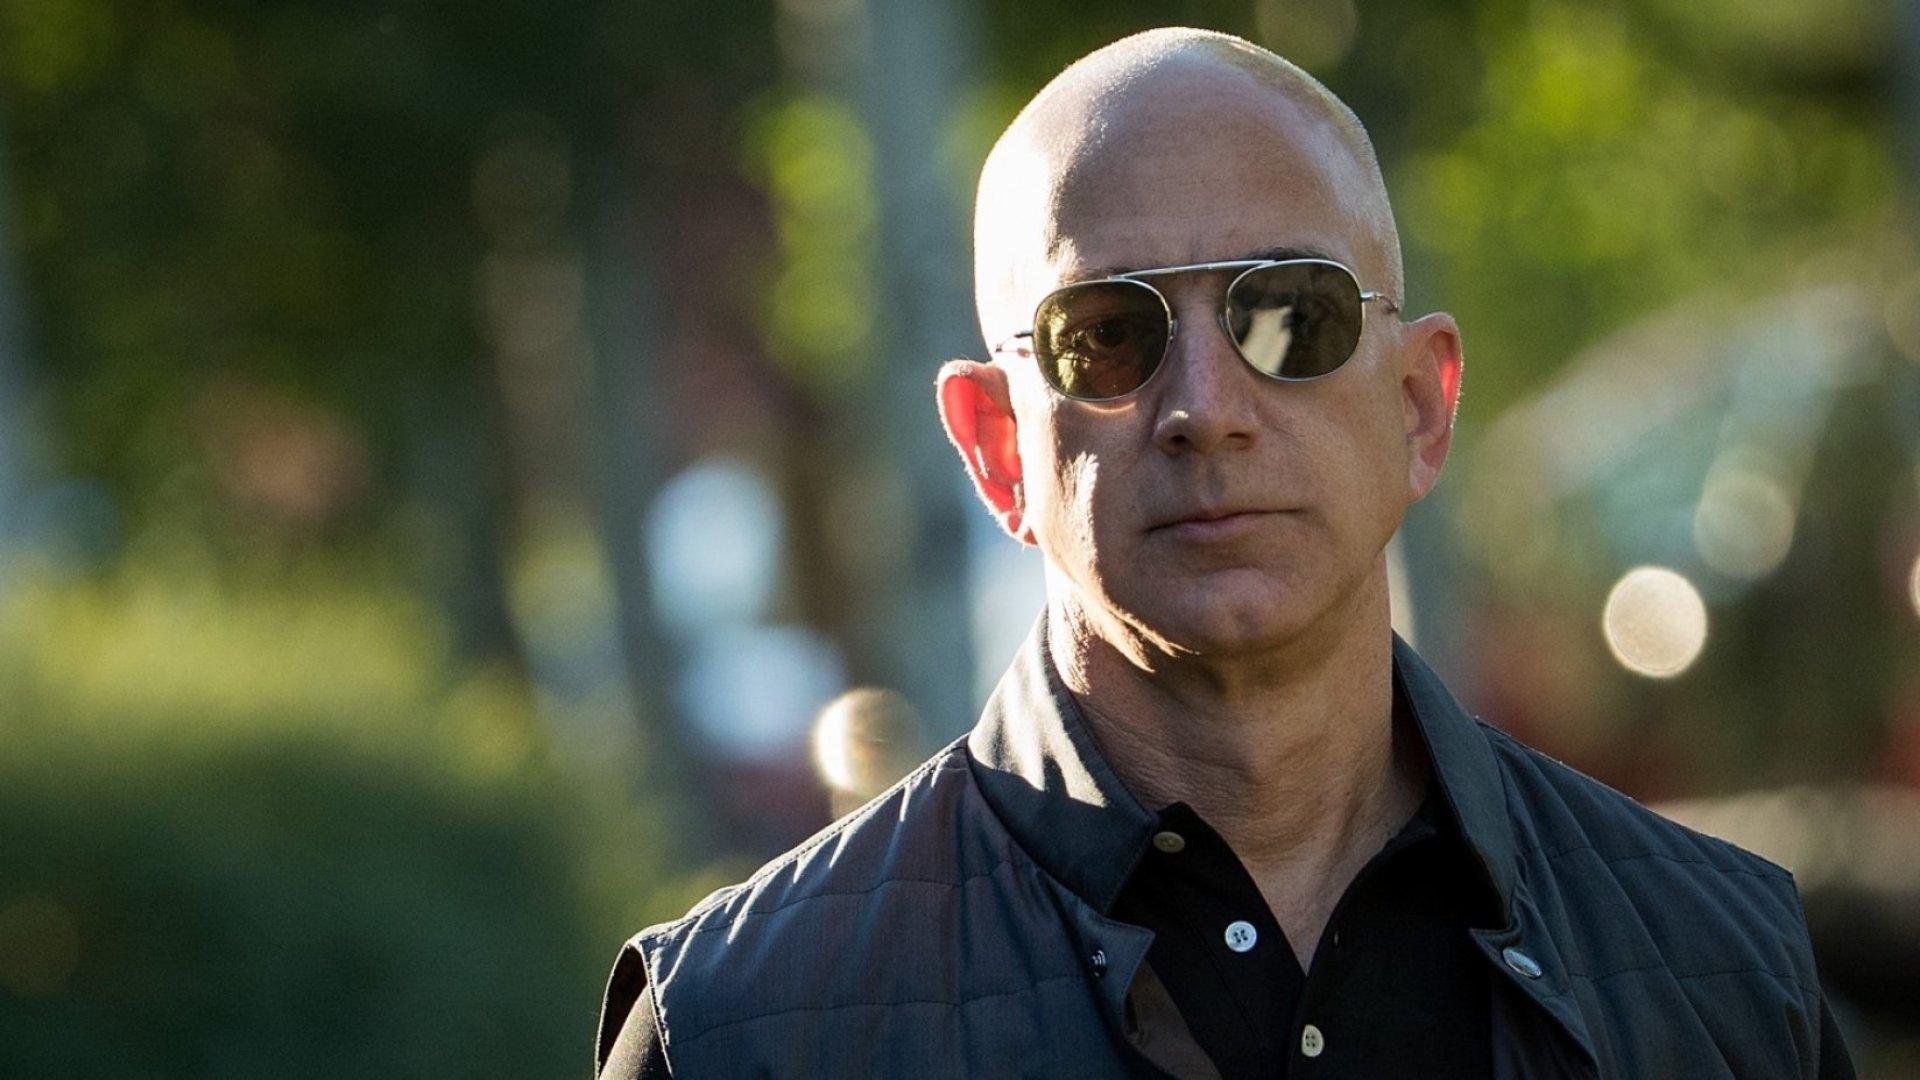 This Viral Jeff Bezos Meme Is the Perfect Metaphor for Amazon's World Domination